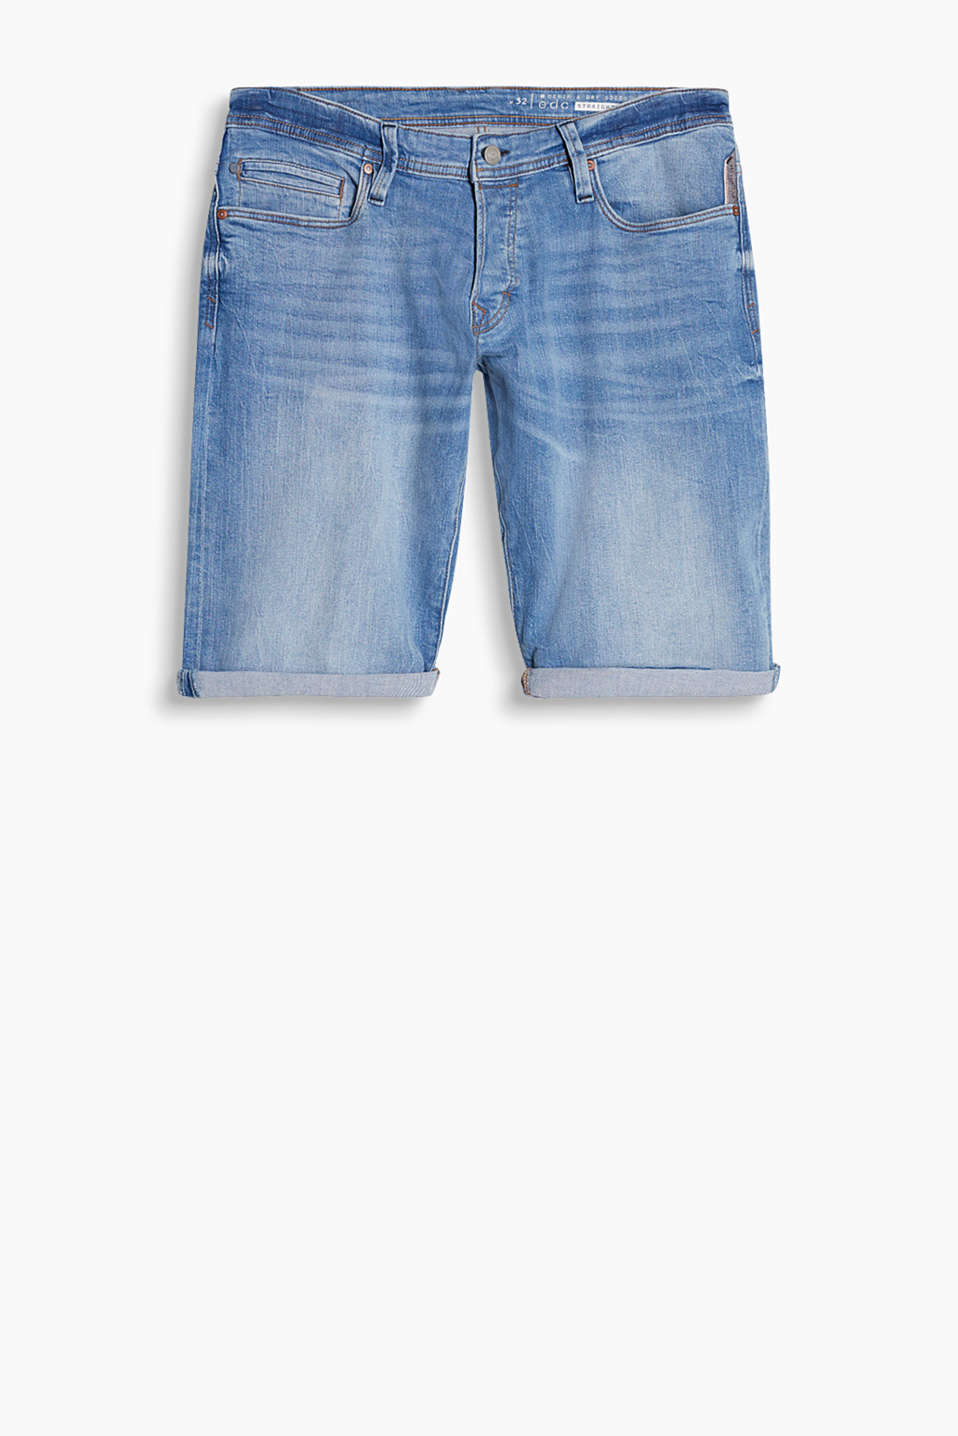 Bermuda shorts in a classic five-pocket style with garment-washed effects